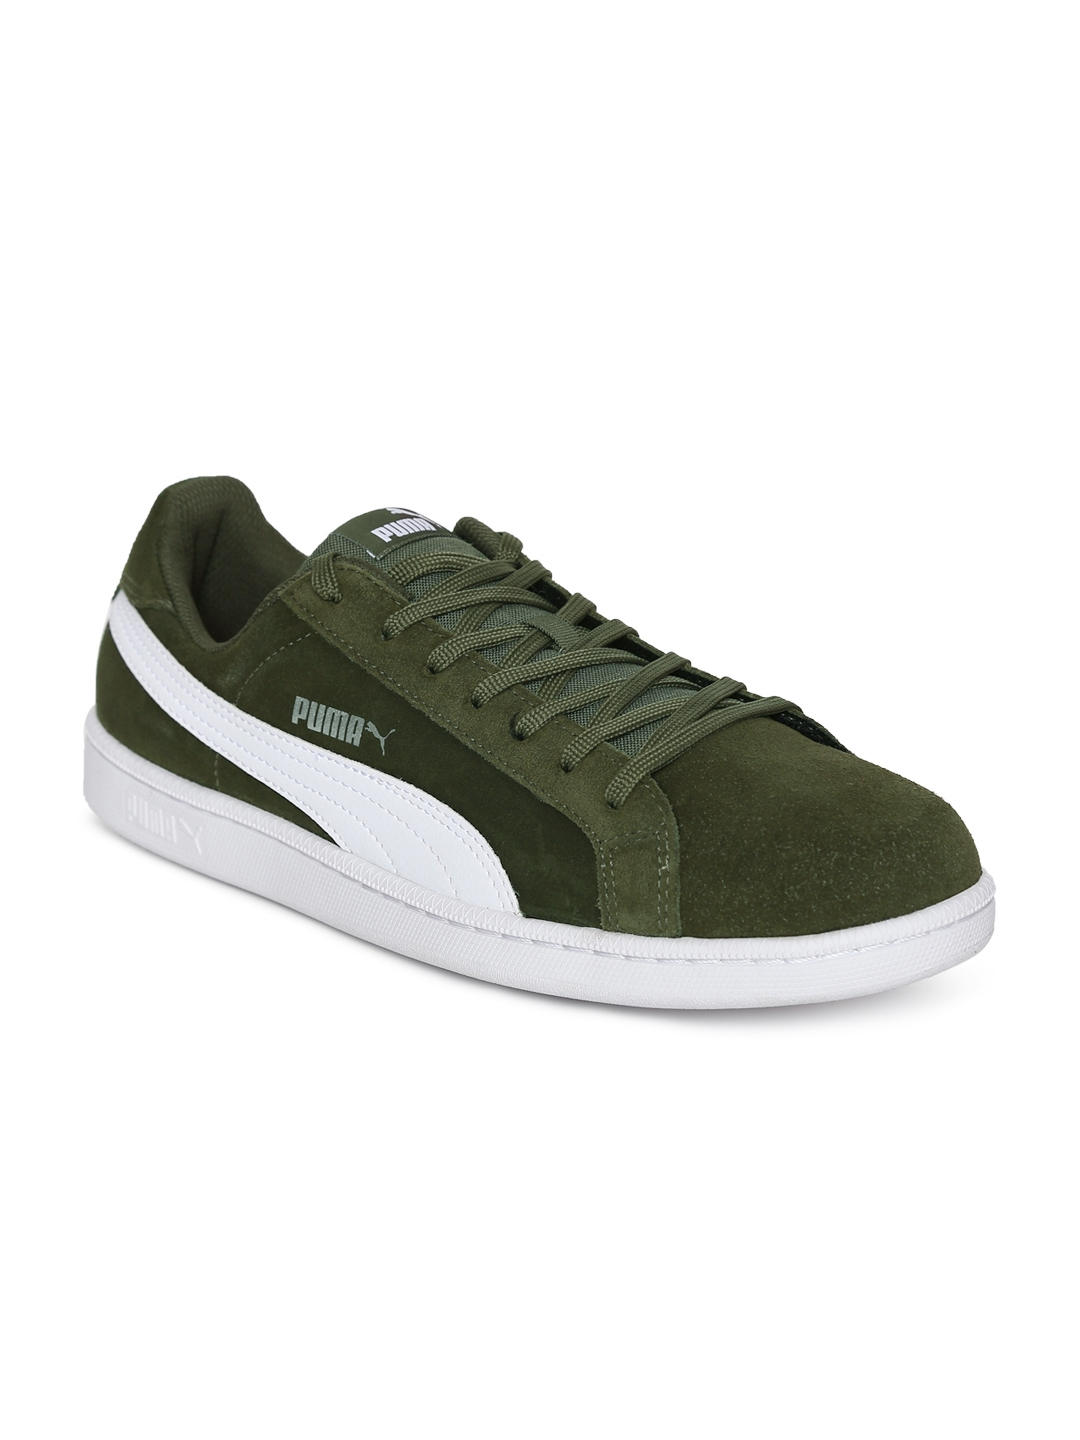 Buy Puma Men Olive Green Smash SD Sneakers - Casual Shoes for Men ... 9ac9fb4dc